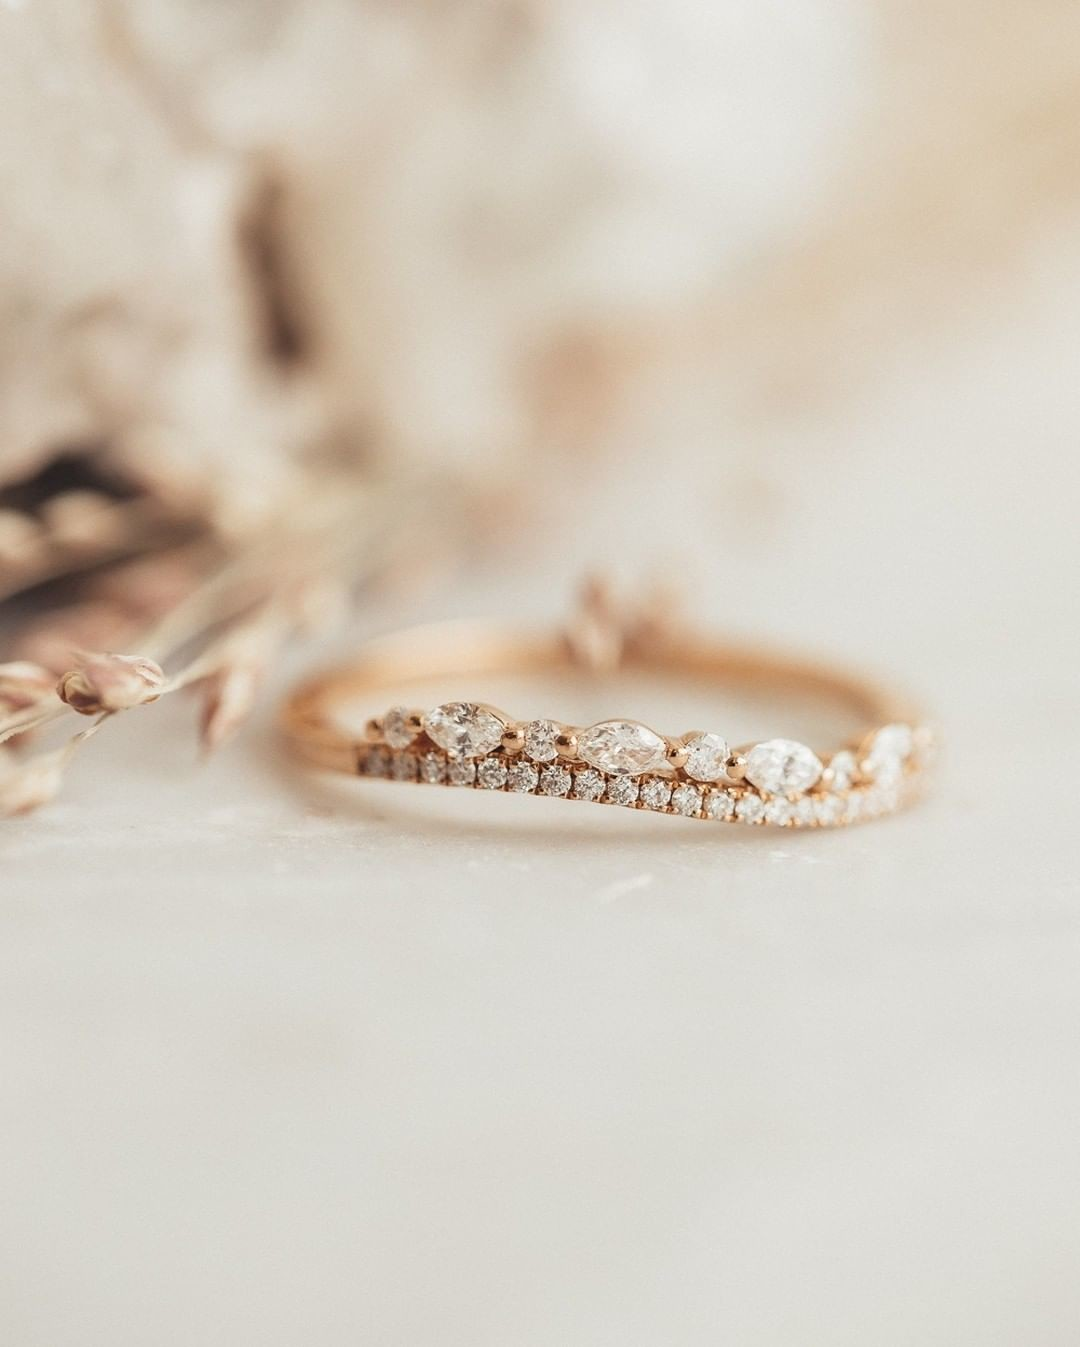 The perfect mix of marquise and round diamonds, this jaw dropping wave band in 18k rose gold has got us feelin' fancy this Friday!